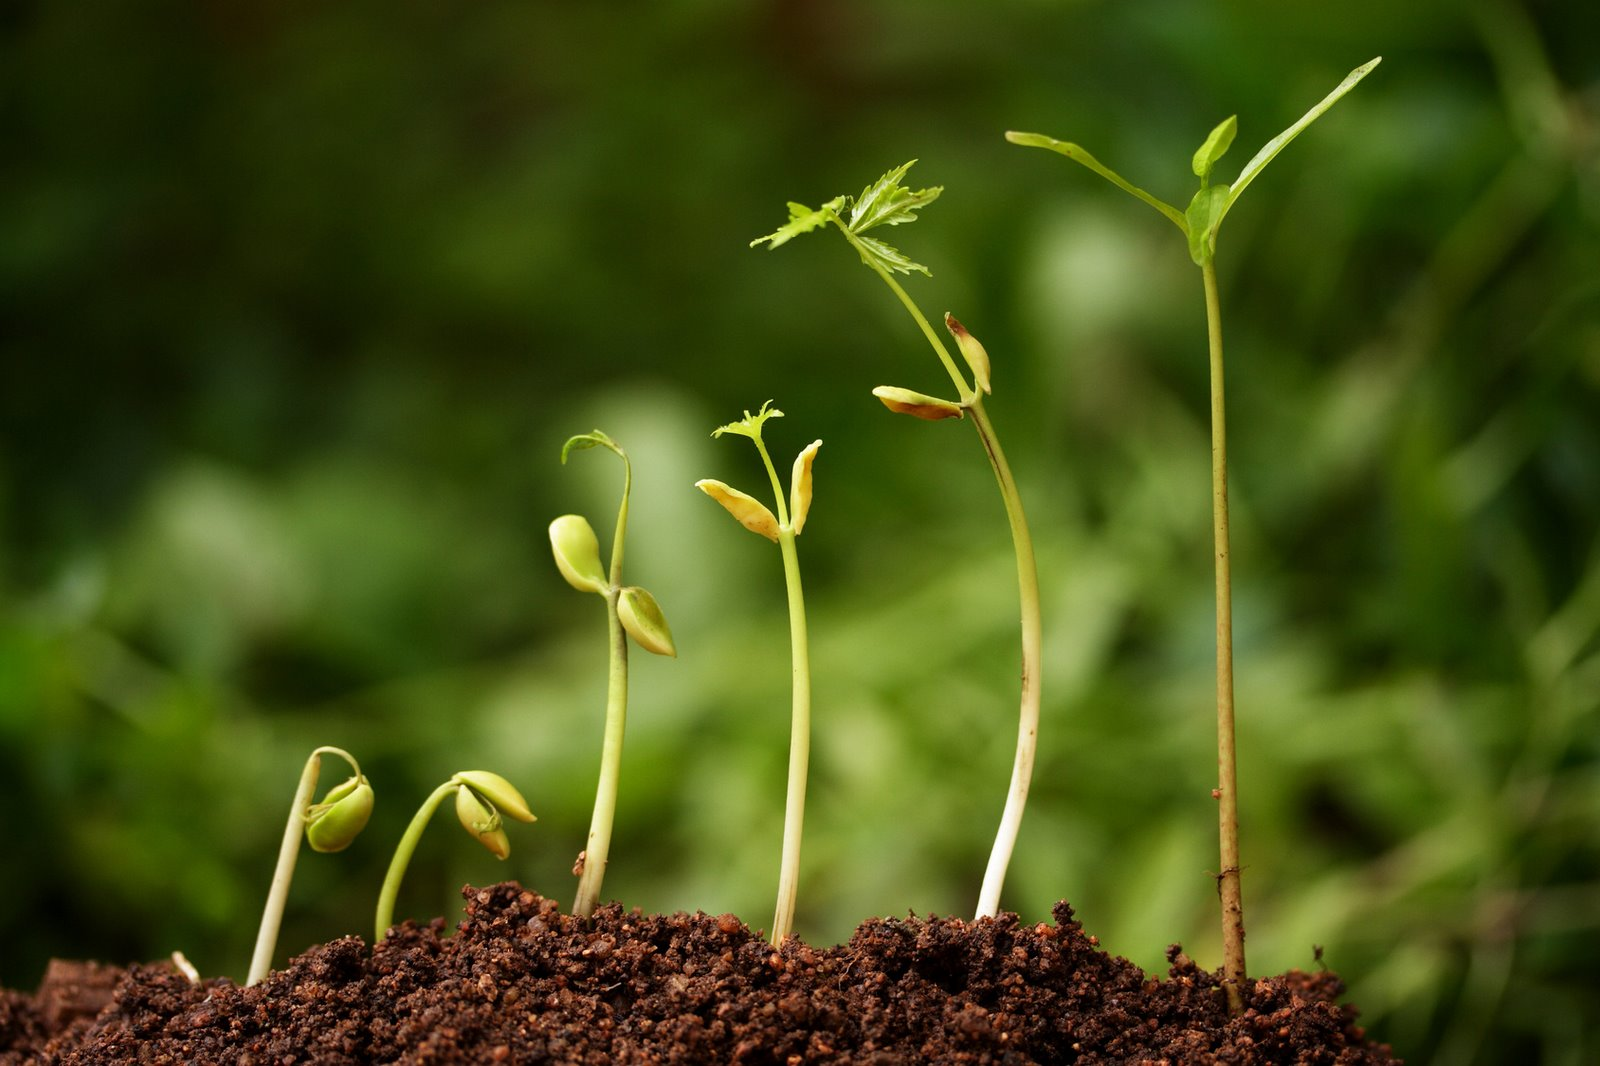 Seedlings in various stages of growth. Let this teaching find its place among my people.